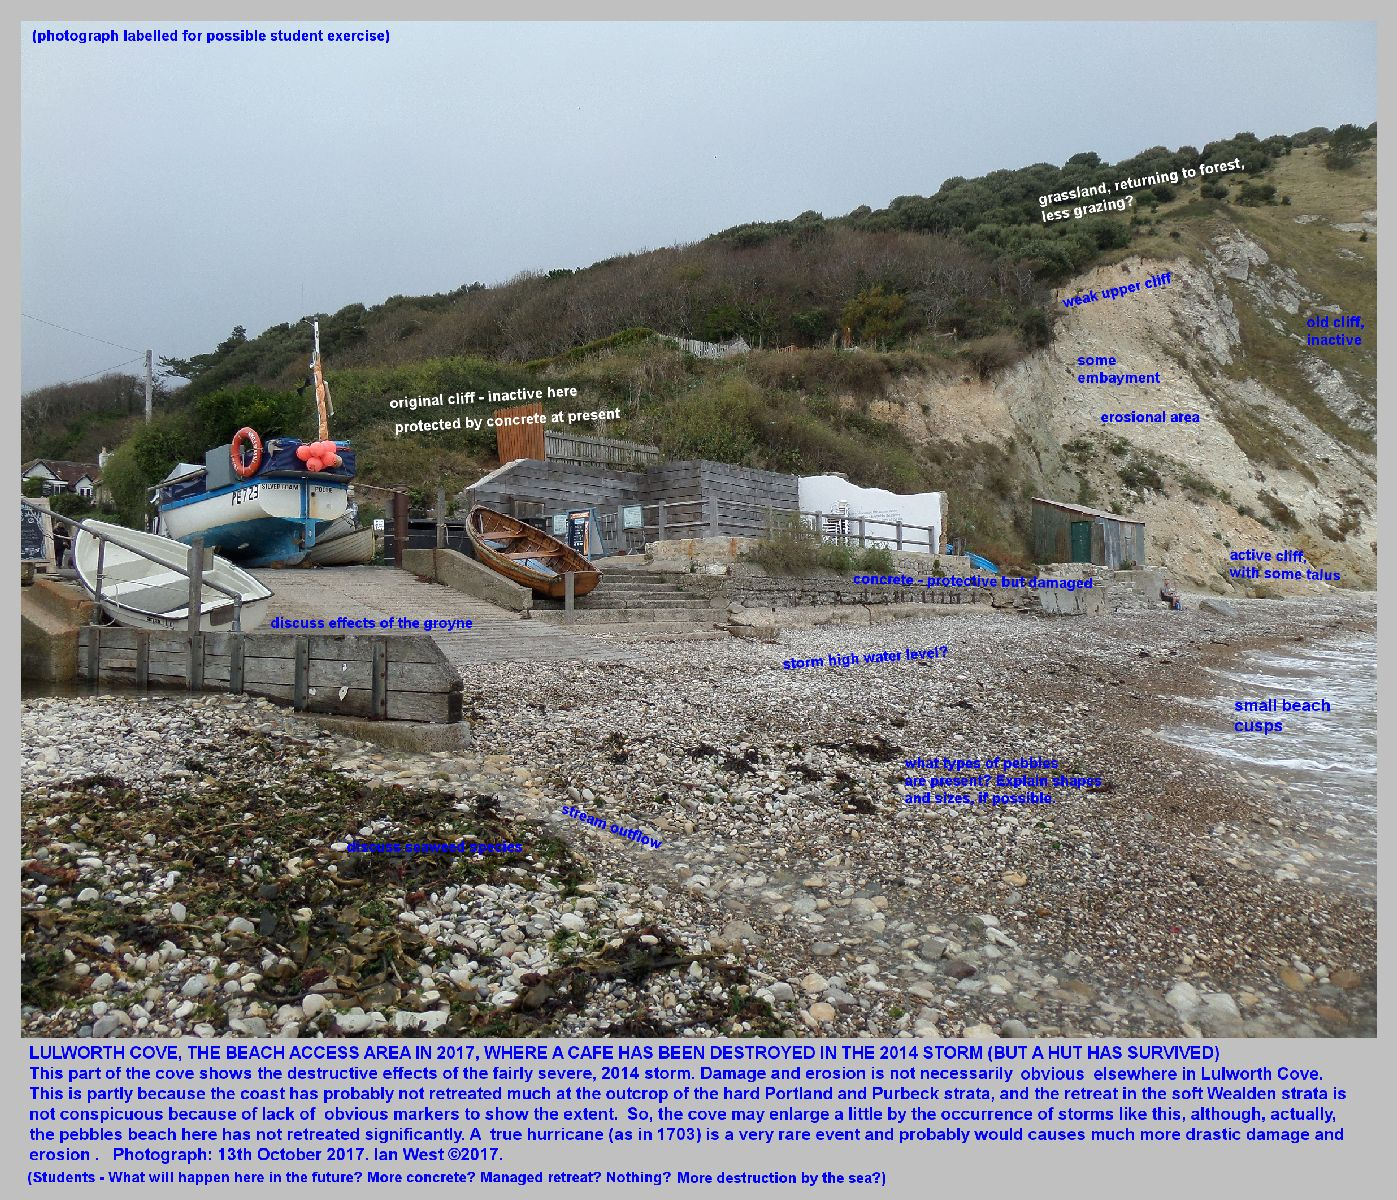 The eroded and damaged, access point to tbe beach at Lulworth Cove, Dorset, with notes for students or for student exercises, 13th October 2017